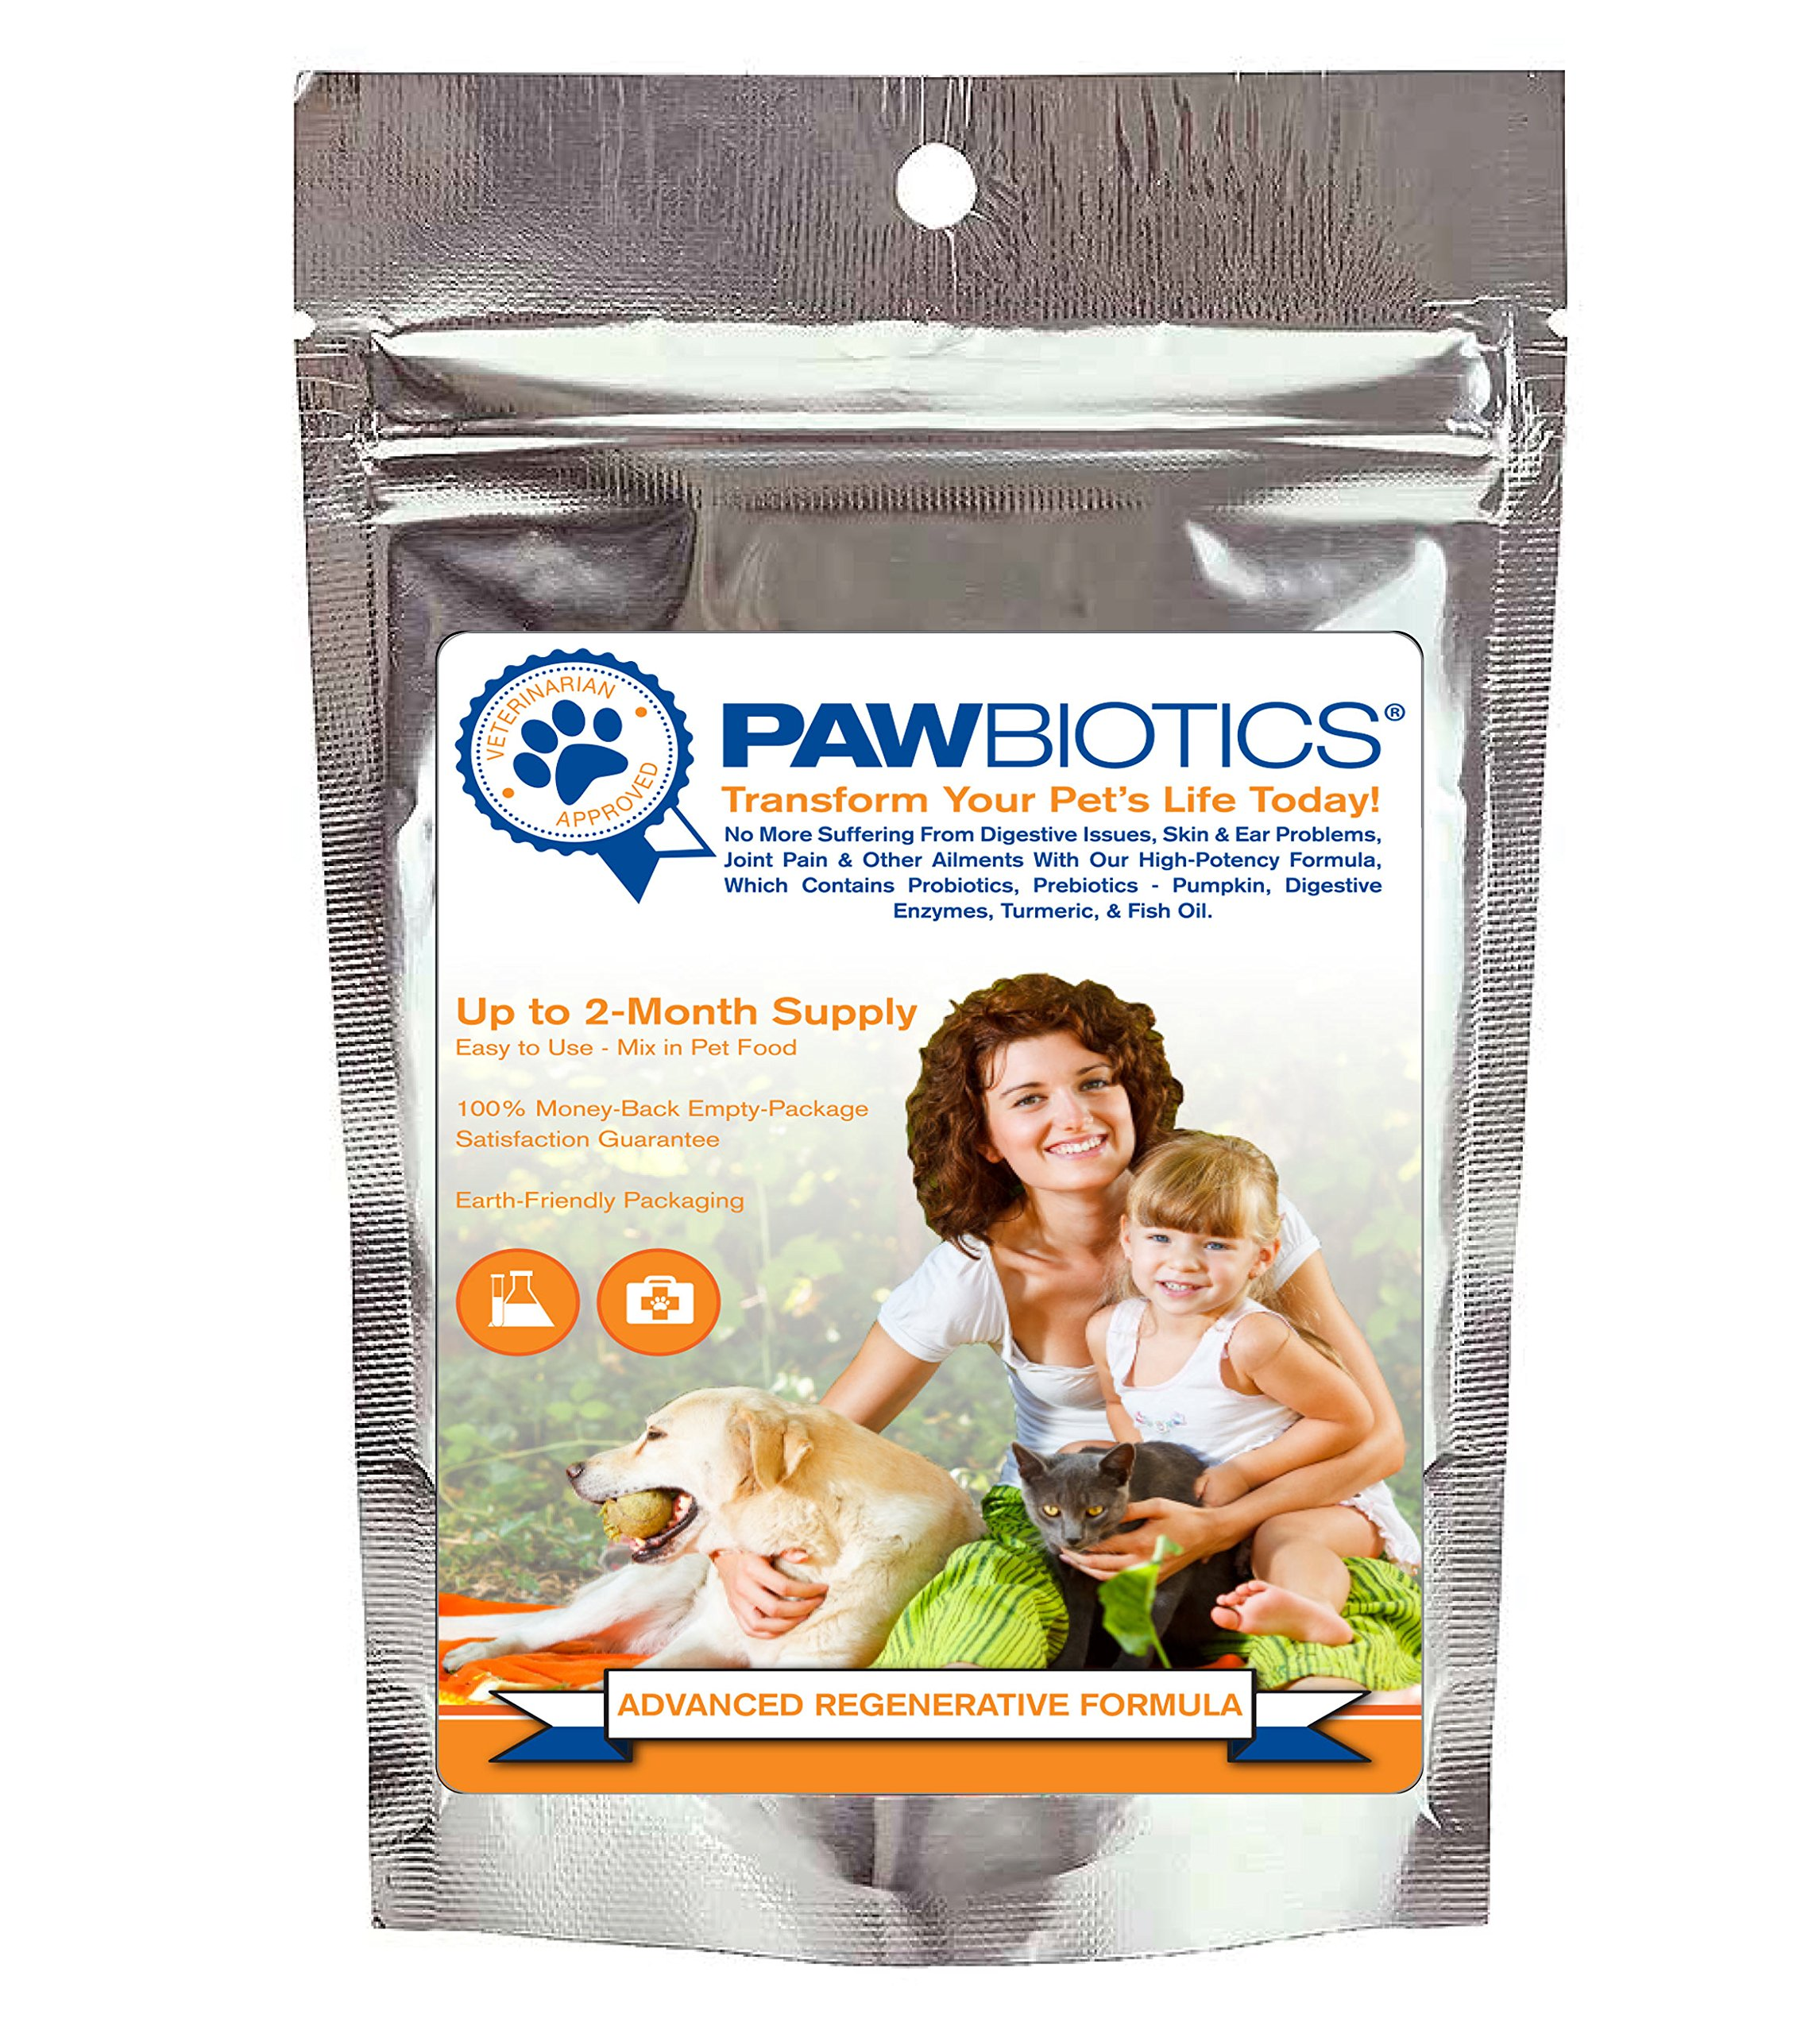 Pawbiotics pet probiotics and enzymes with prebiotics, pumpkin, turmeric, fish oil a natural supplement for dogs and cats (4 ounce)